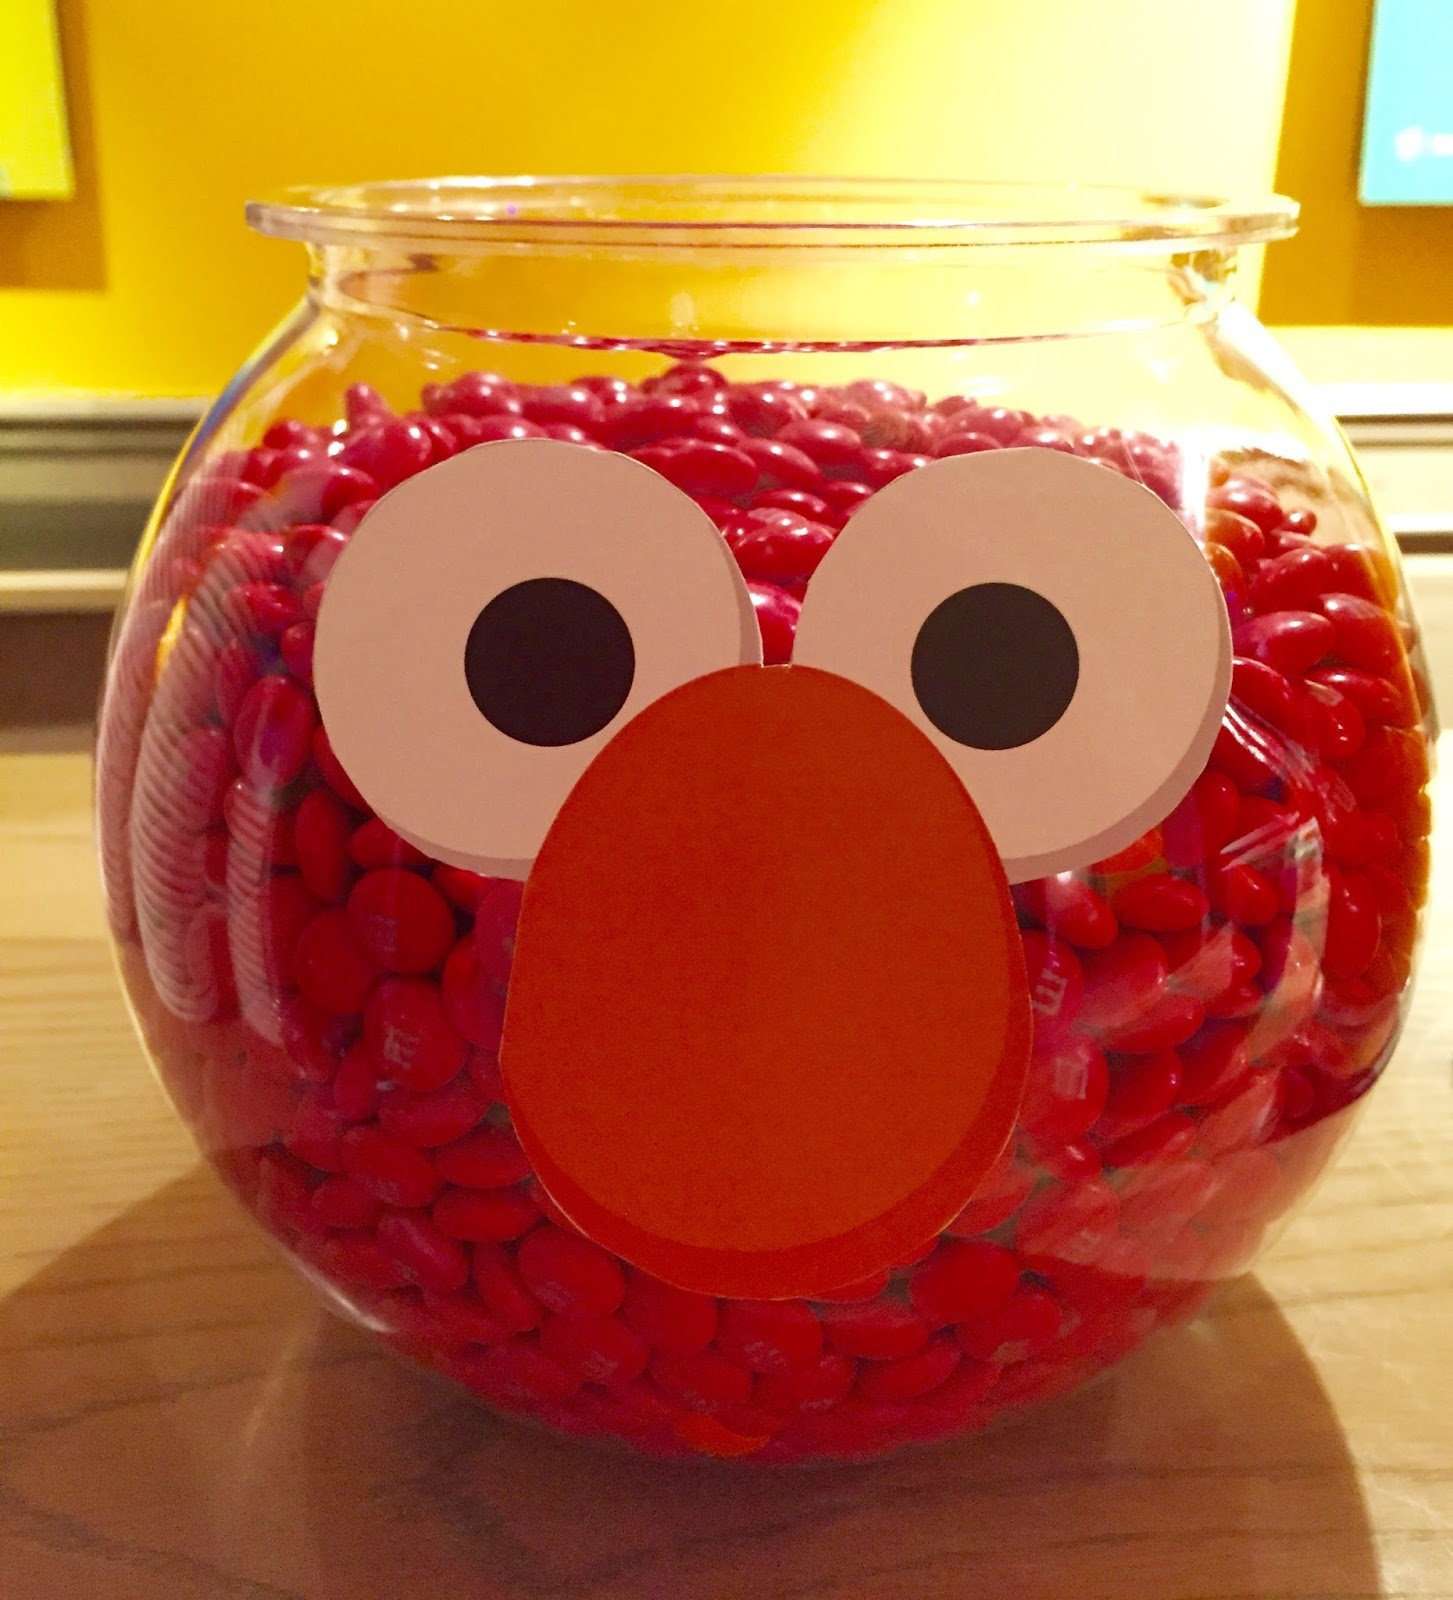 When Tara Met Blog: Meet The New Play All Day Elmo Toy